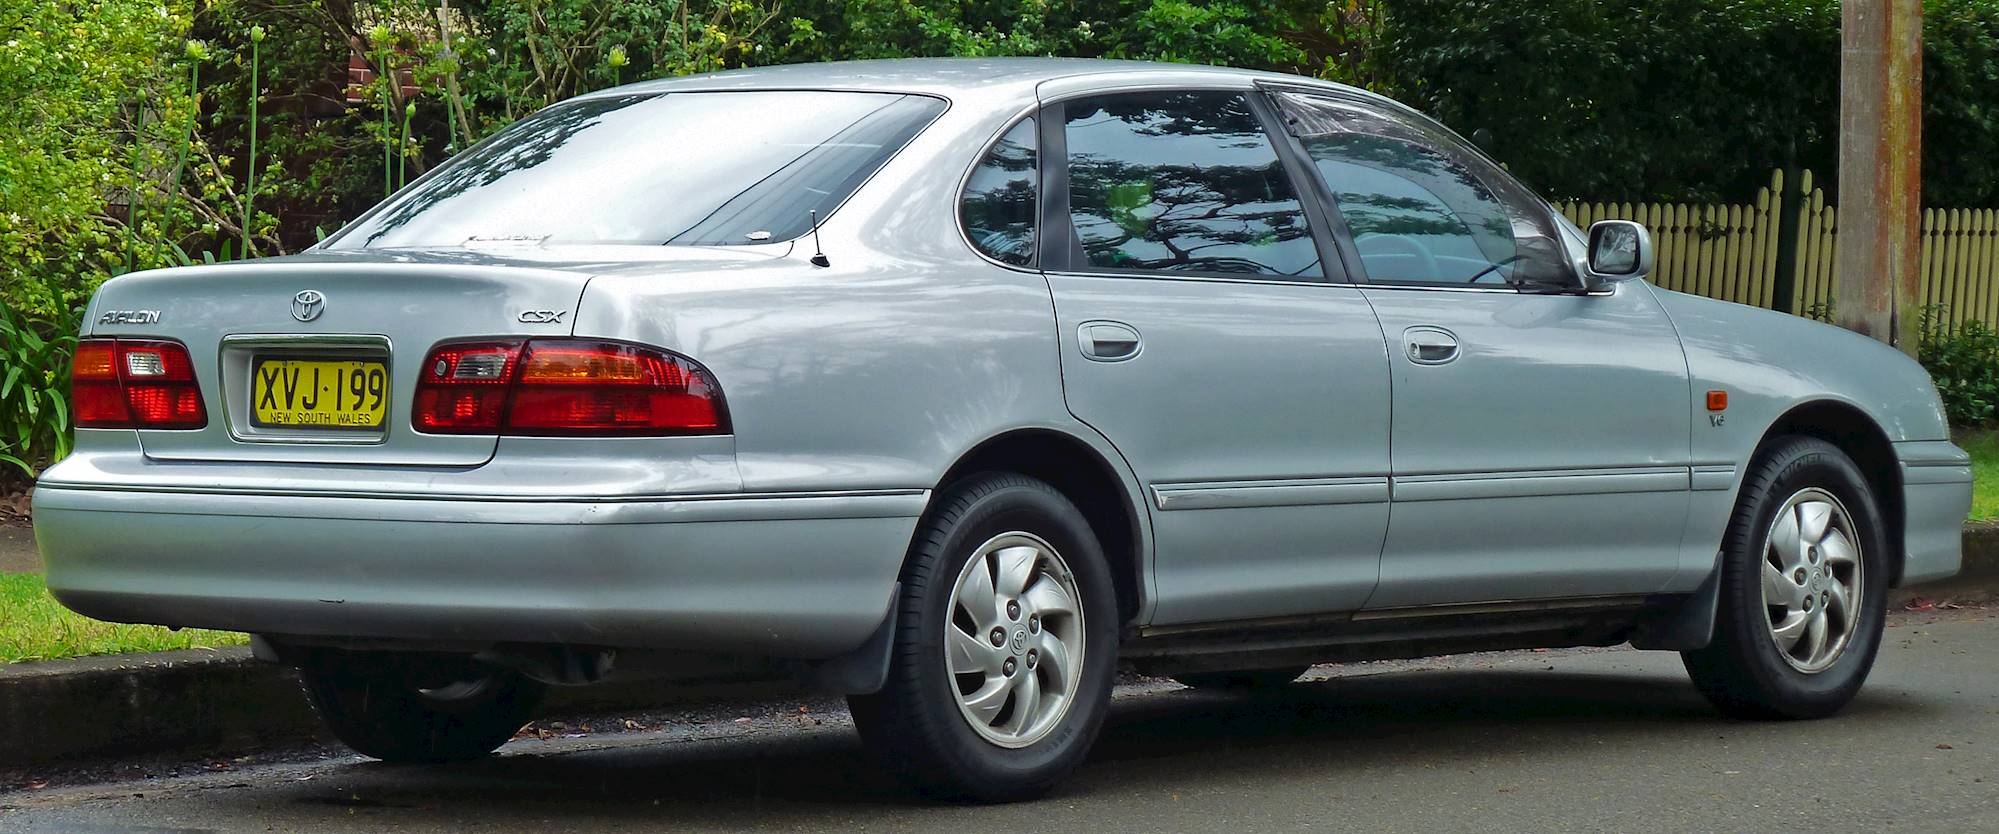 2002 toyota avalon xls owners manual